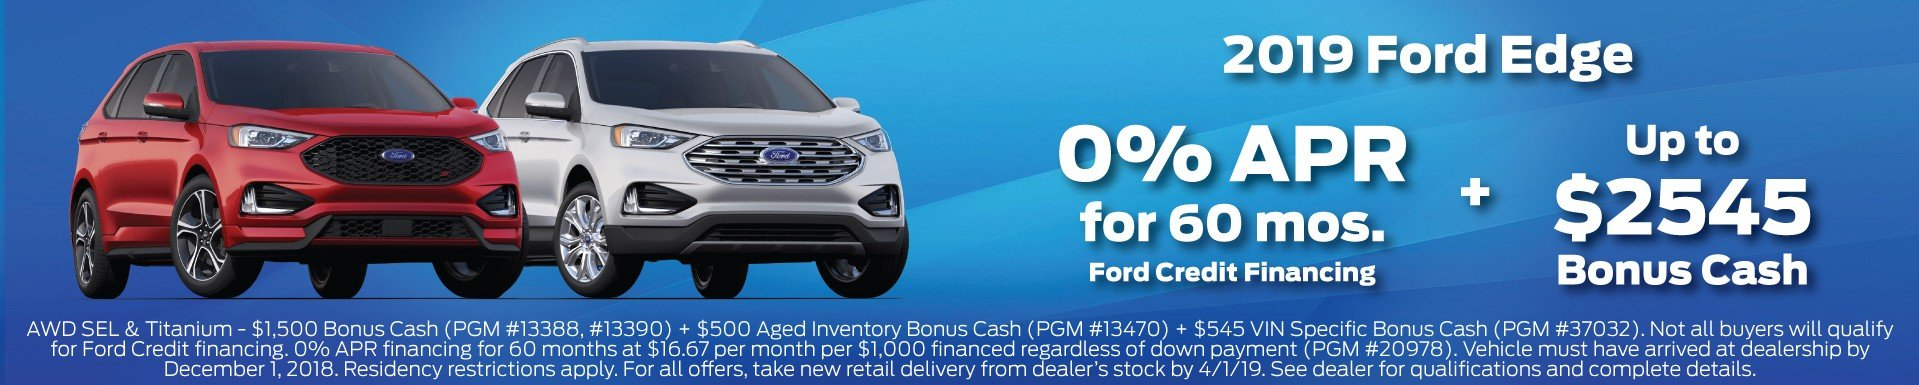 2019 Ford Edge Offer 3-2019